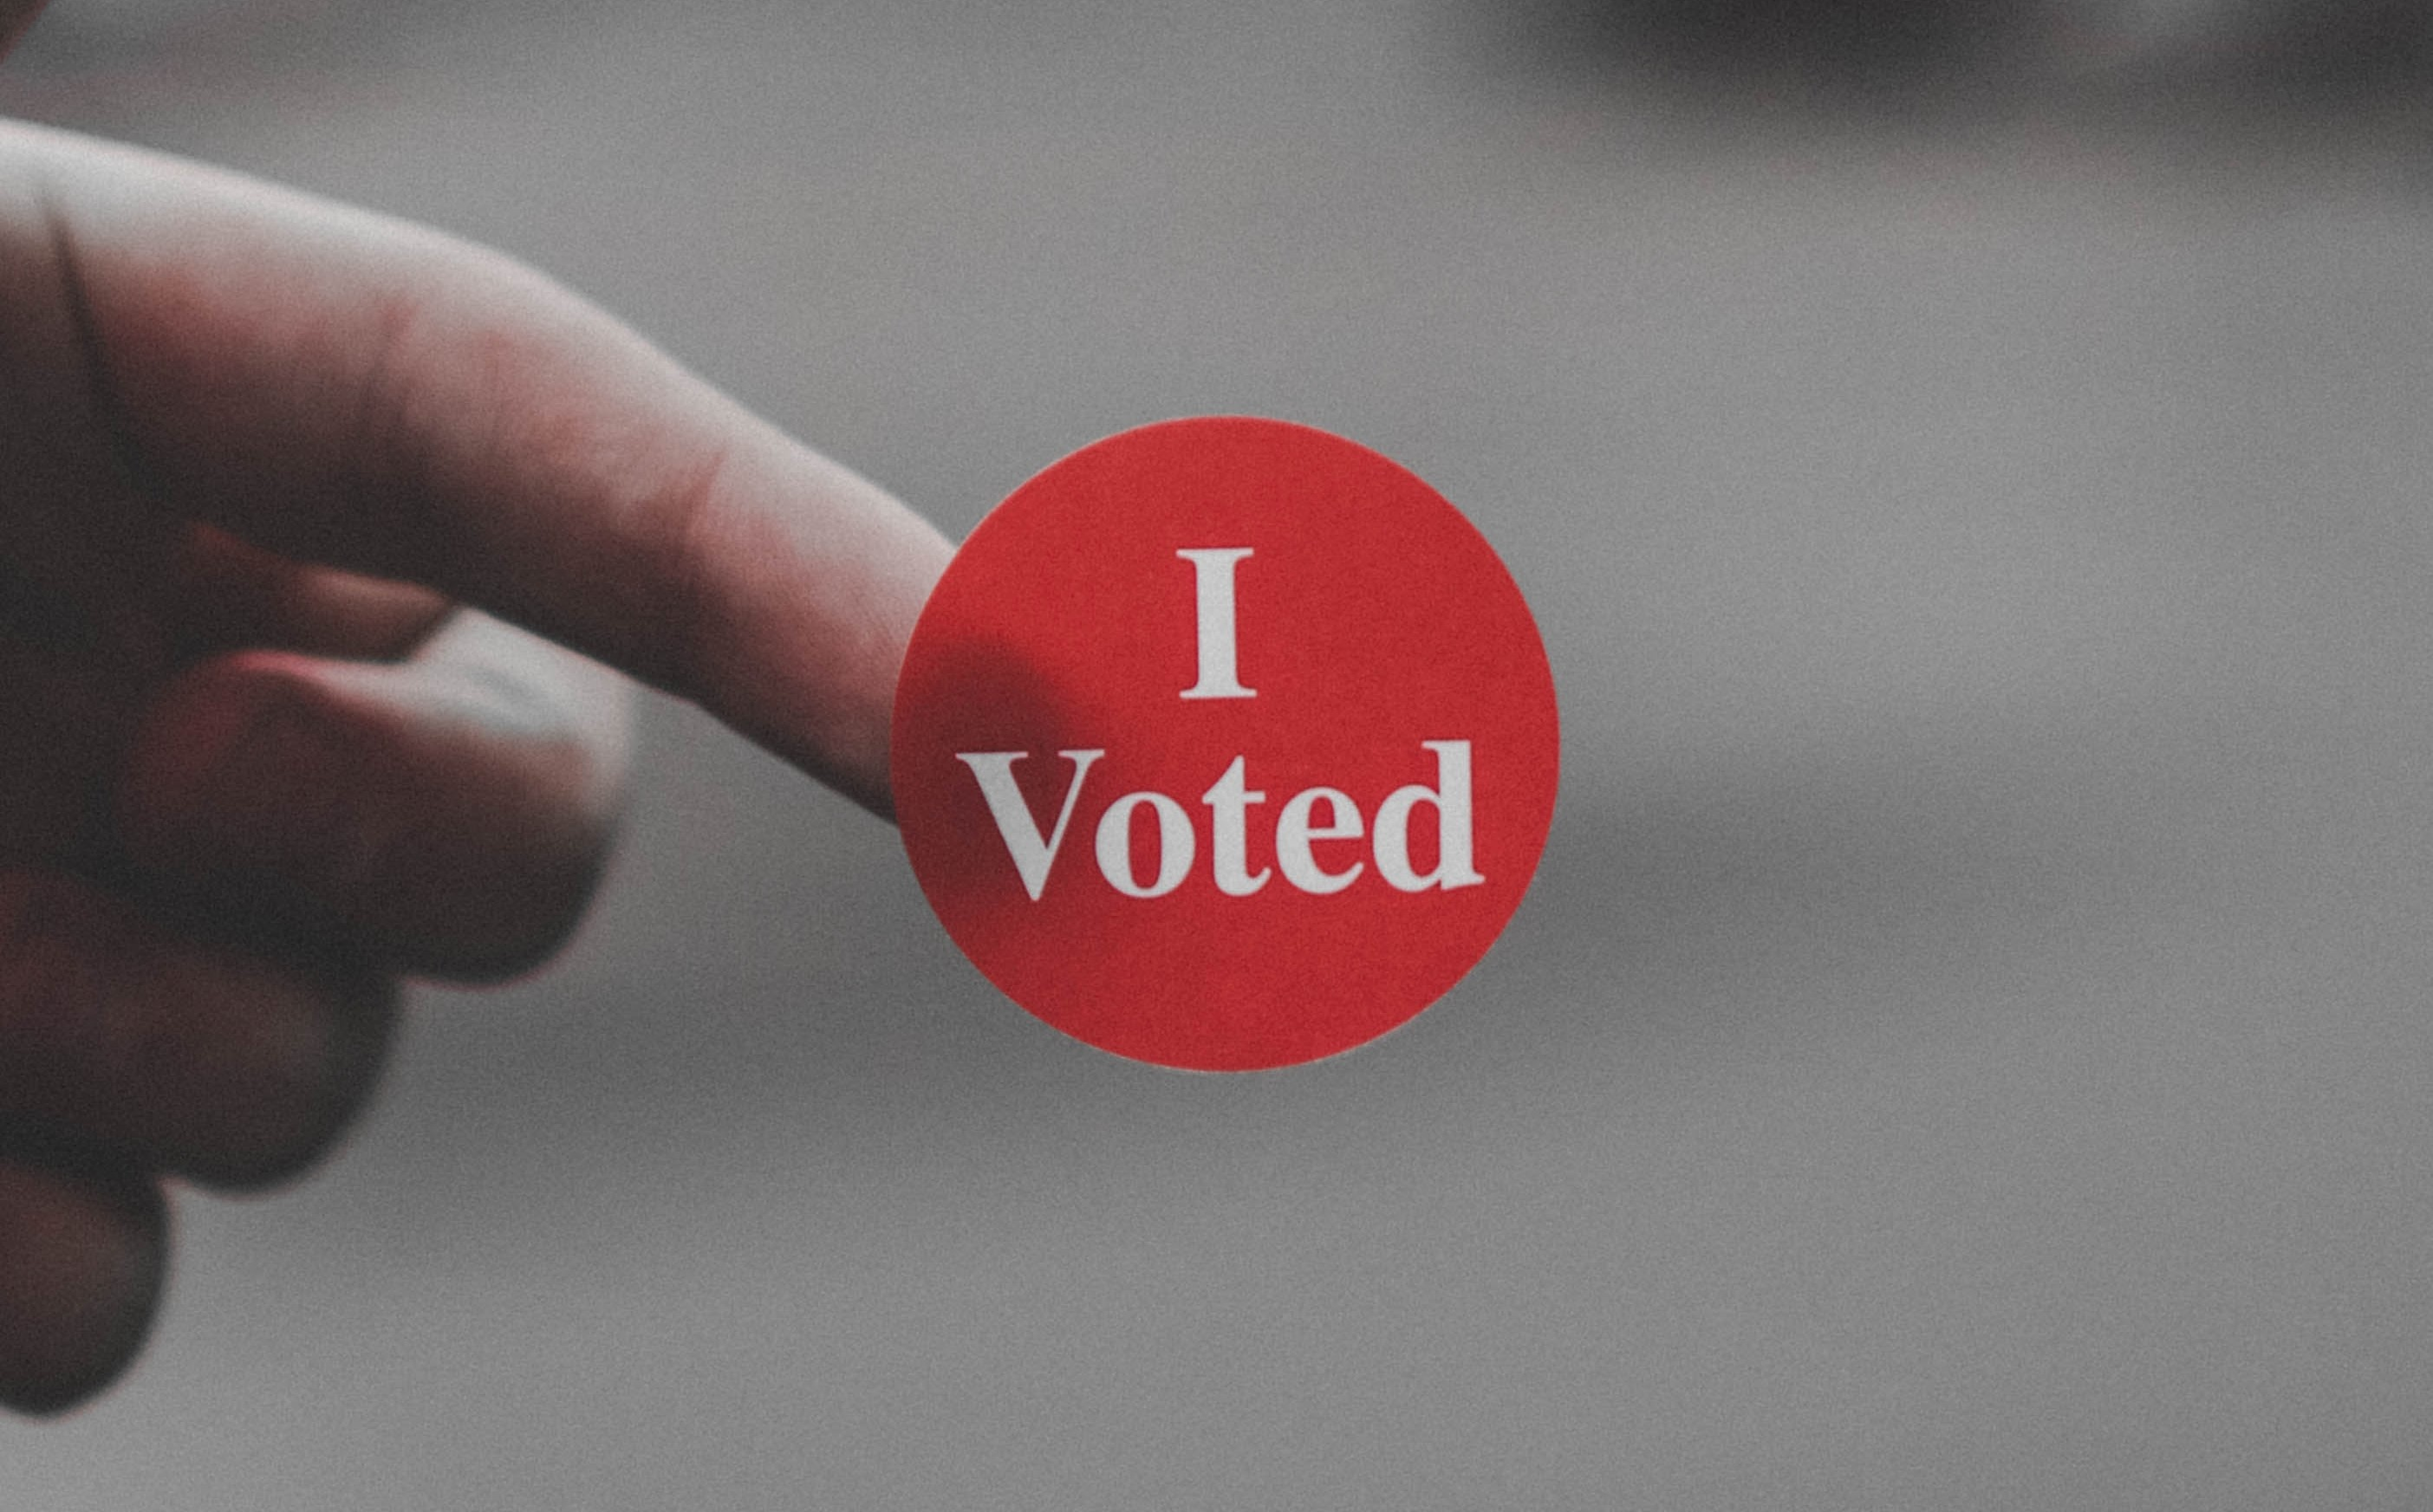 red sticker with the text 'I voted'